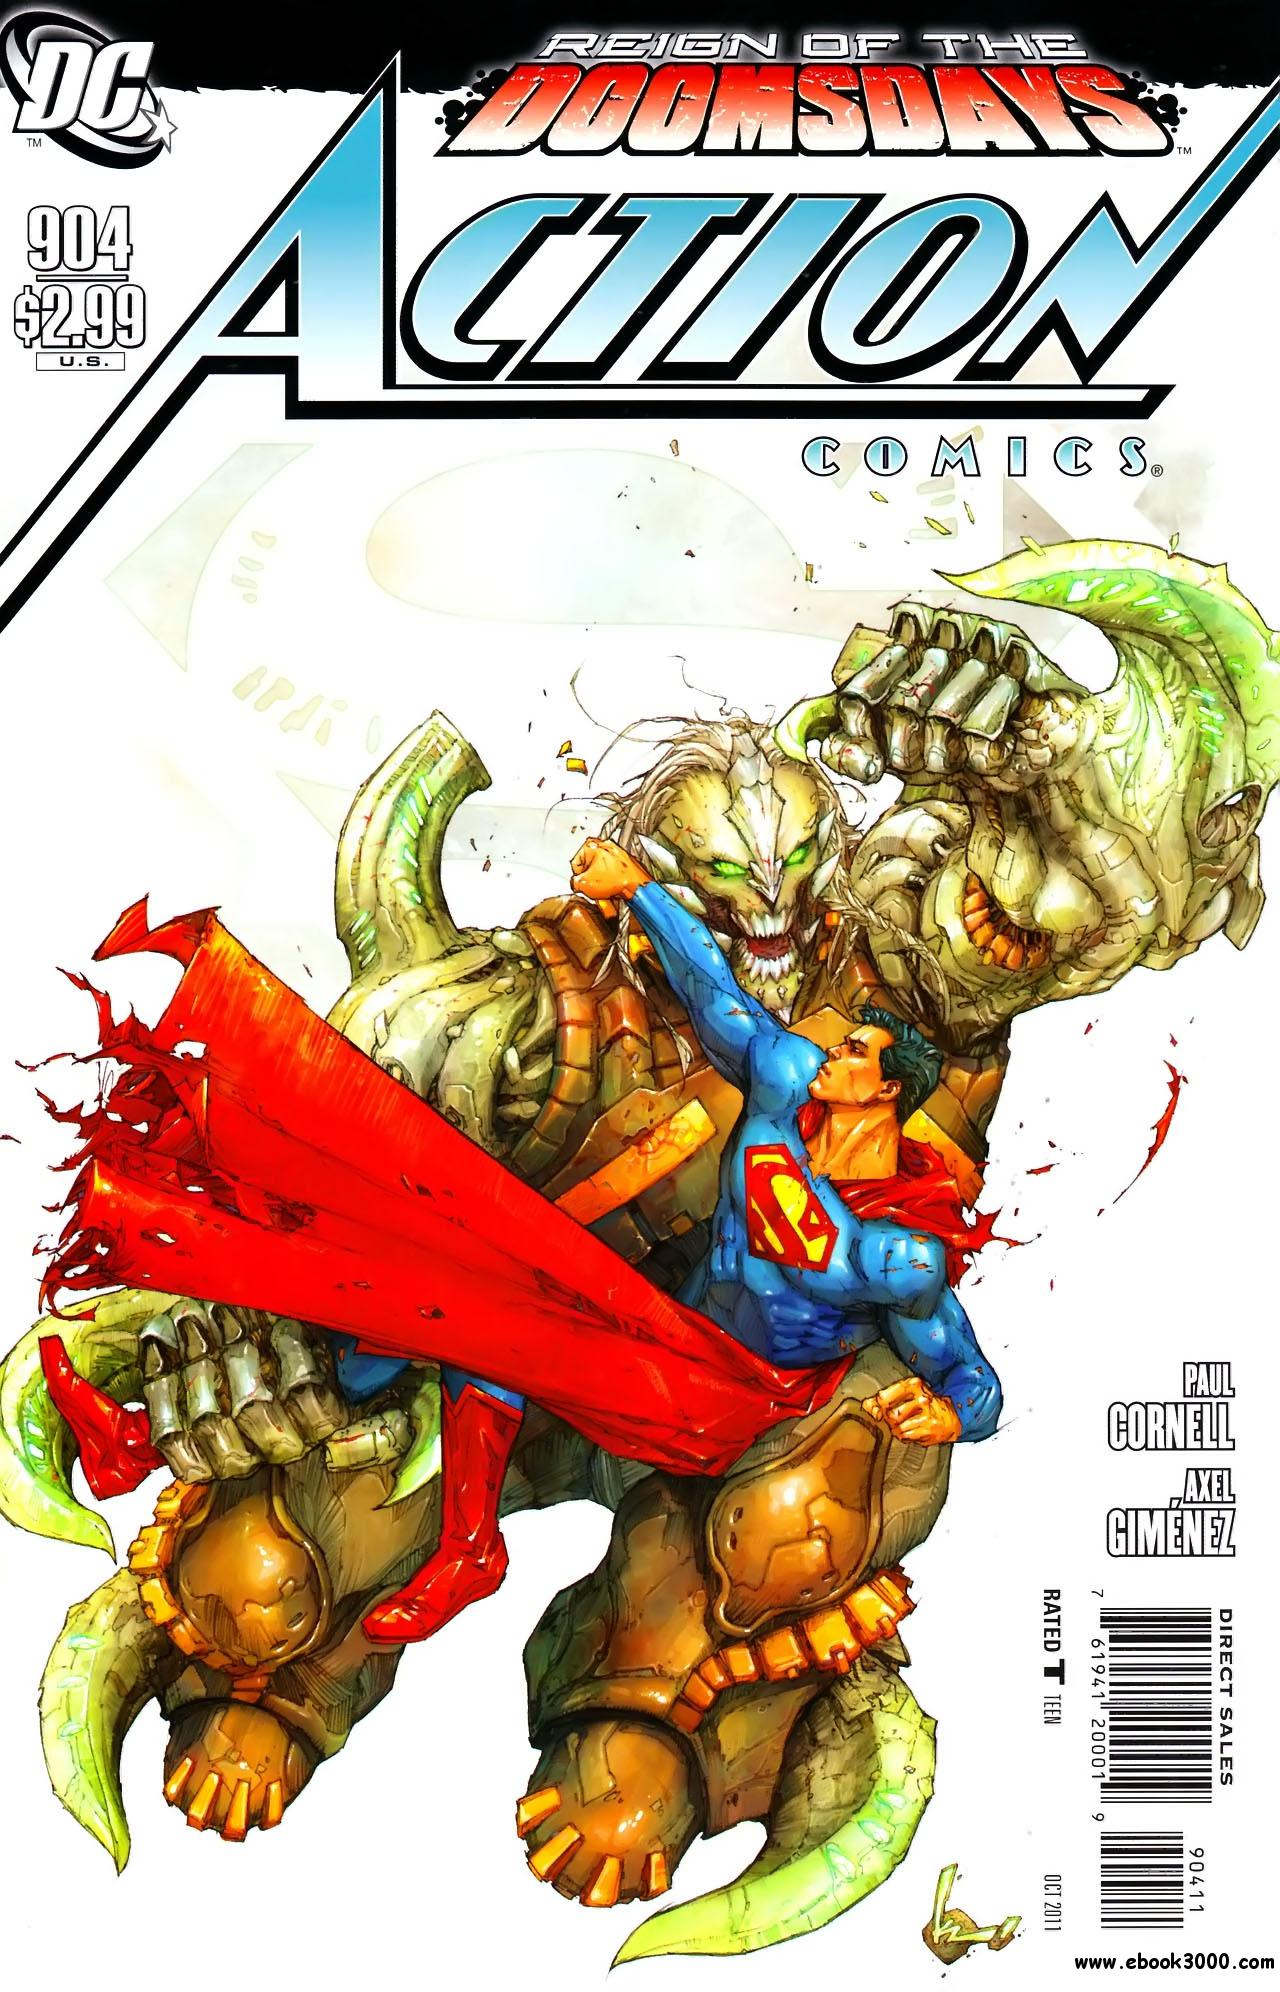 Action Comics #904 (2011) free download